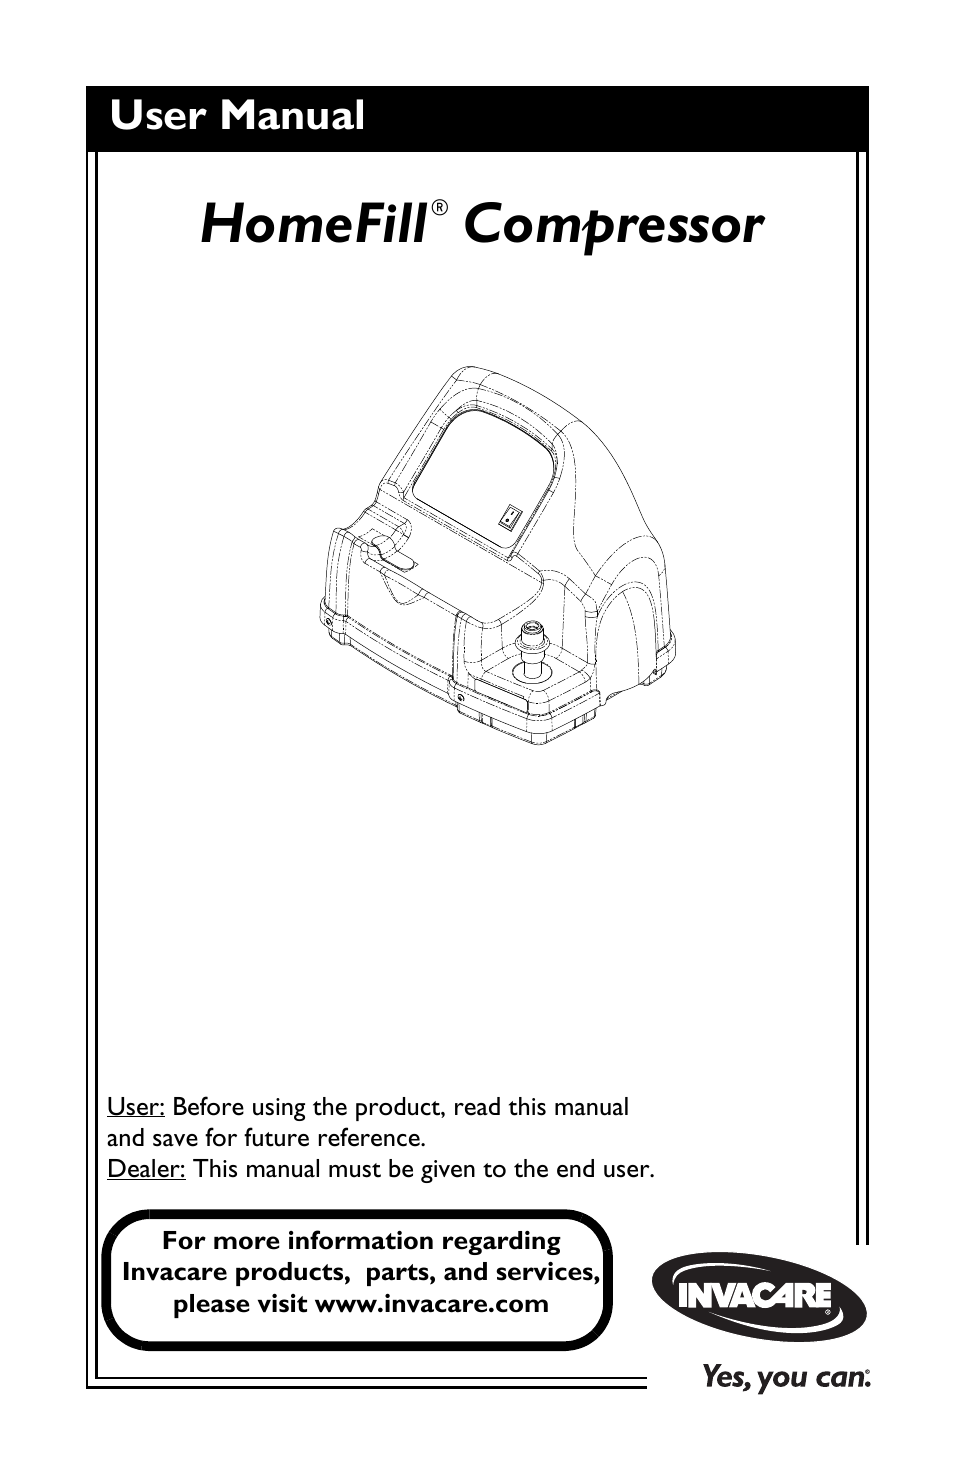 invacare compressor user manual 36 pages user manual nikon d7100 user manual nikon d70s